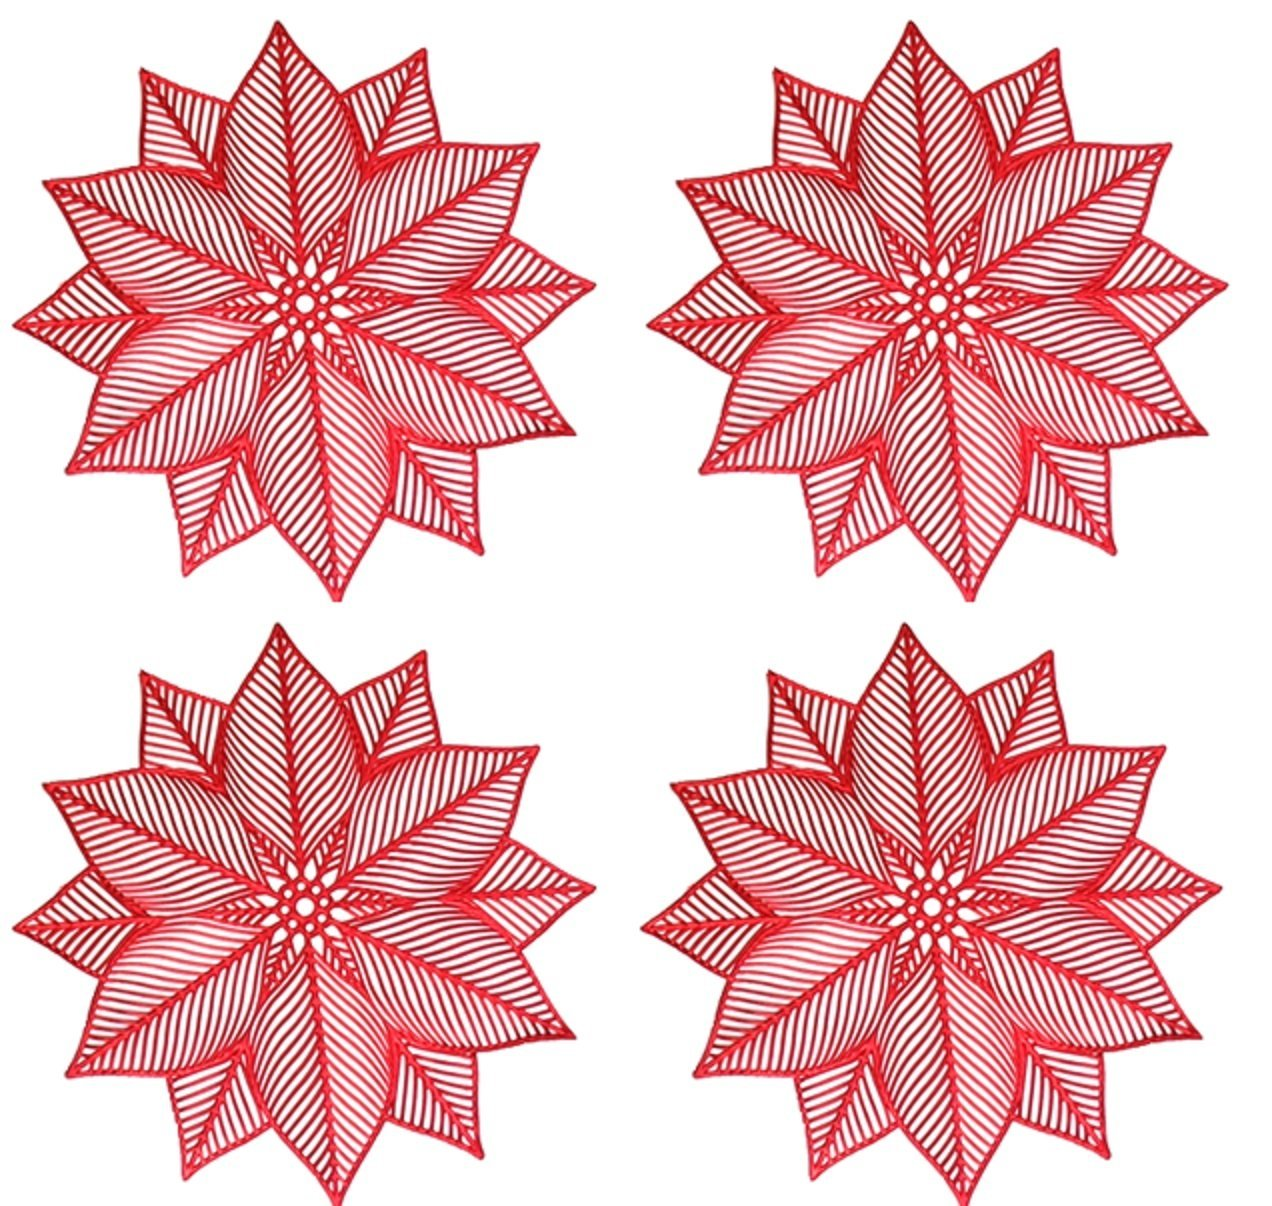 Benson Mills Modern Poinsettia Pressed Vinyl Placemats, Red, Set of 4